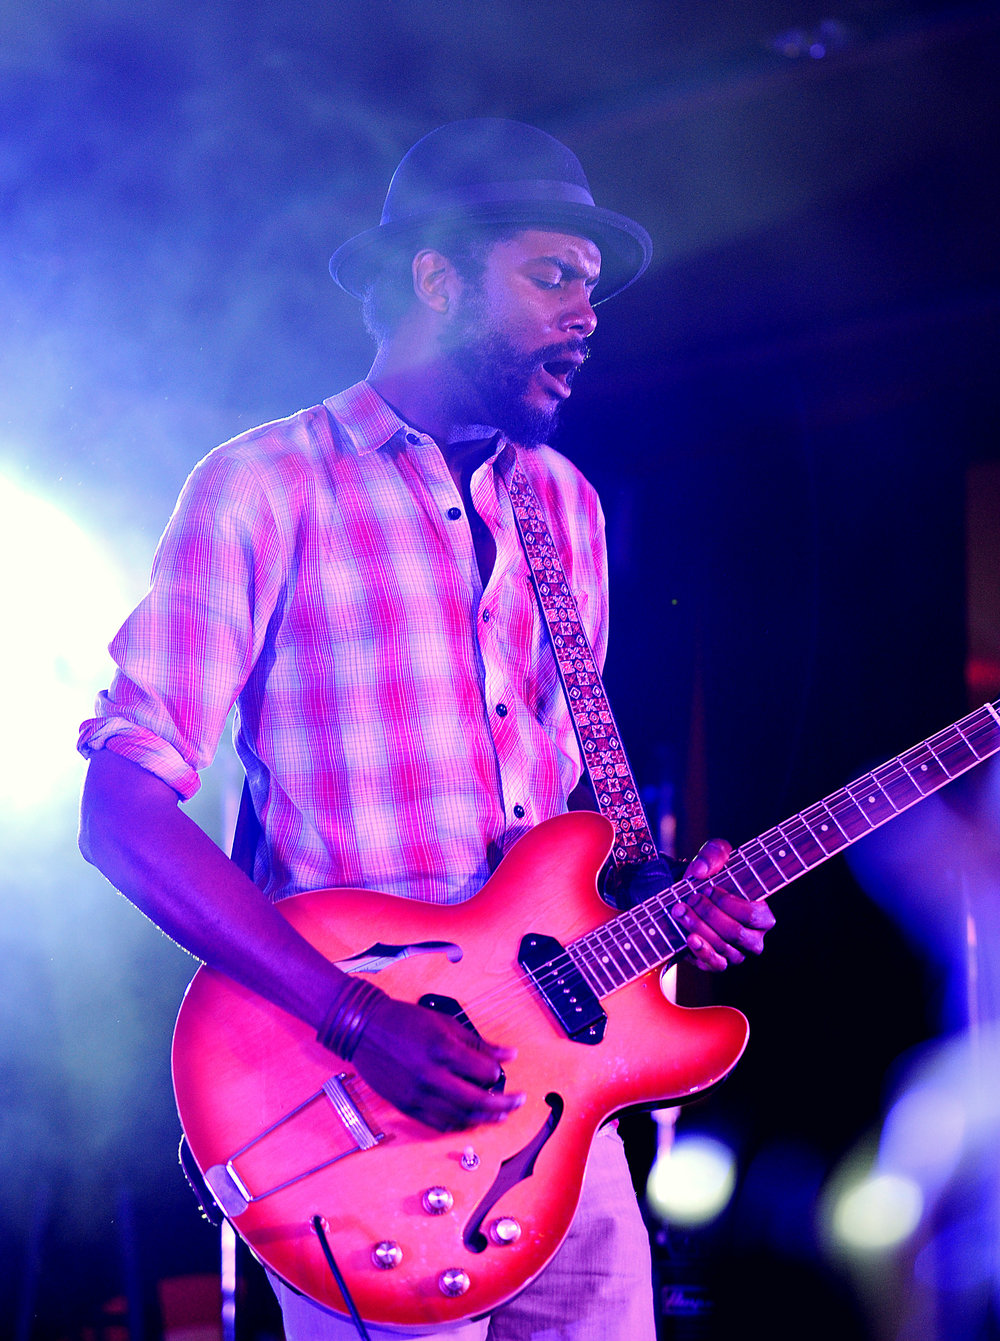 Gary Clark Jr. at Essence Fest by Adrienne Battistella